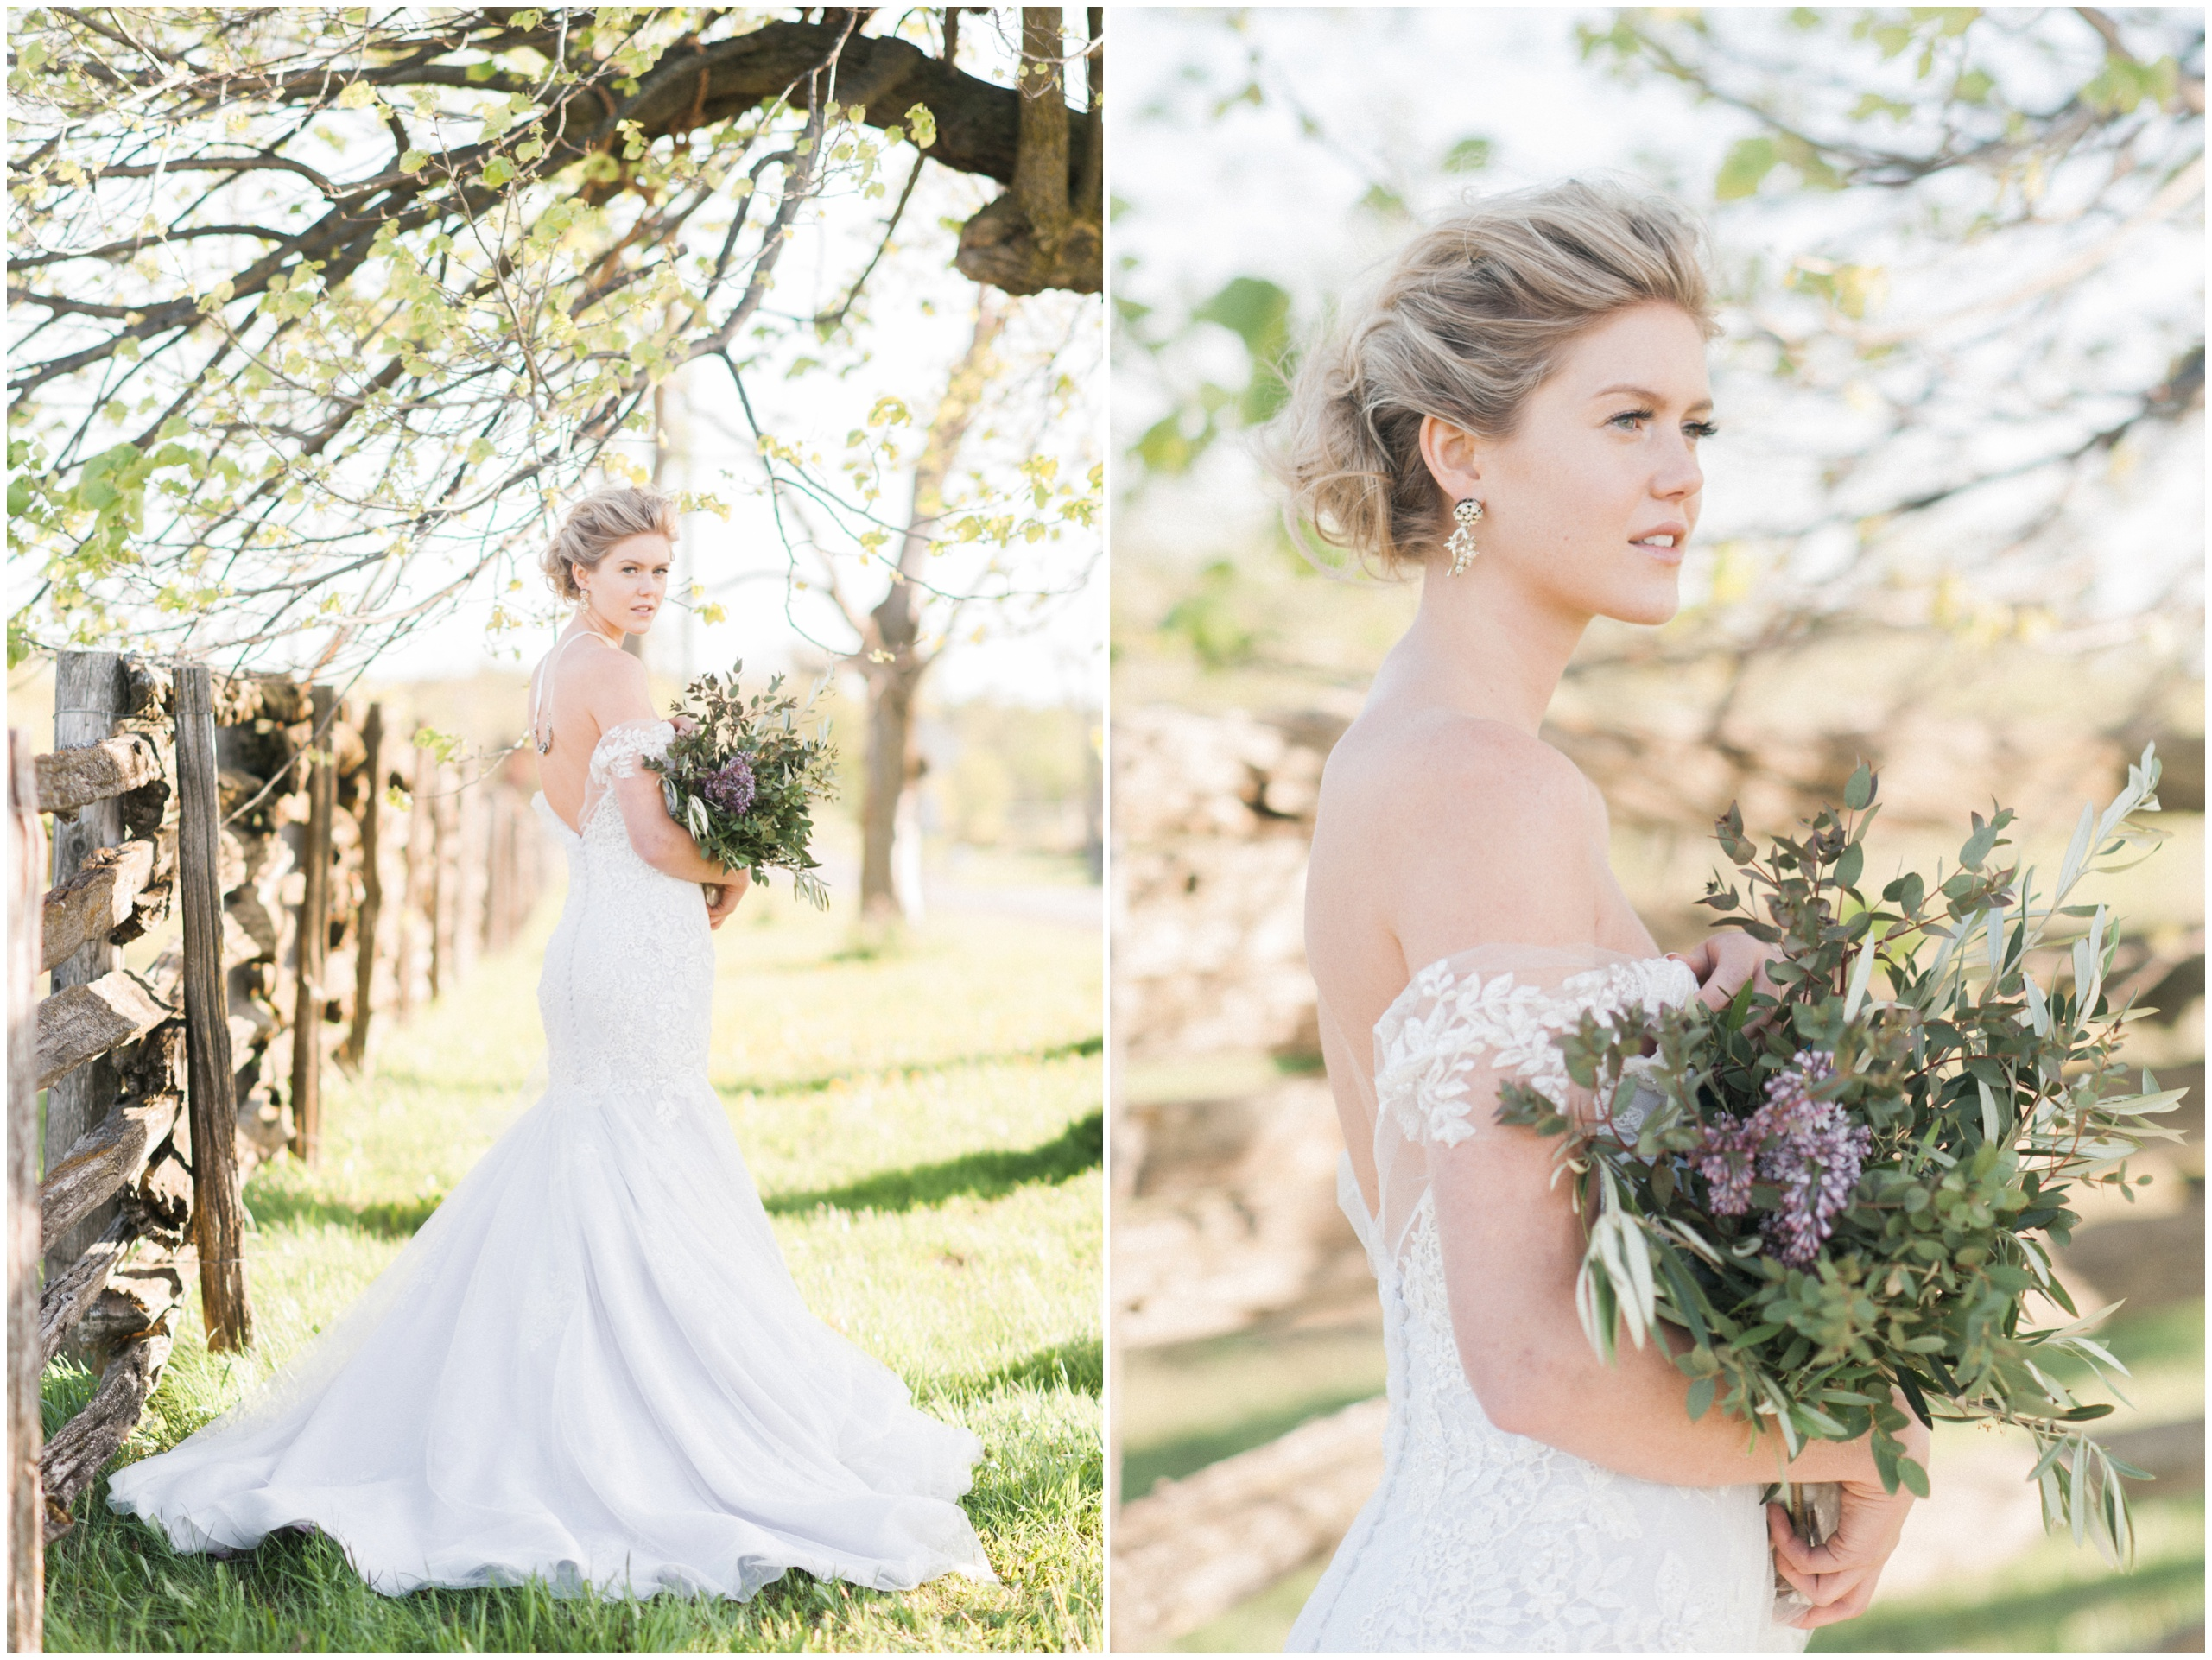 Wedding Inspiration: Bride wearing Hattitude ribbon necklace and Ines Di Santo gown with rustic wild bouquet.